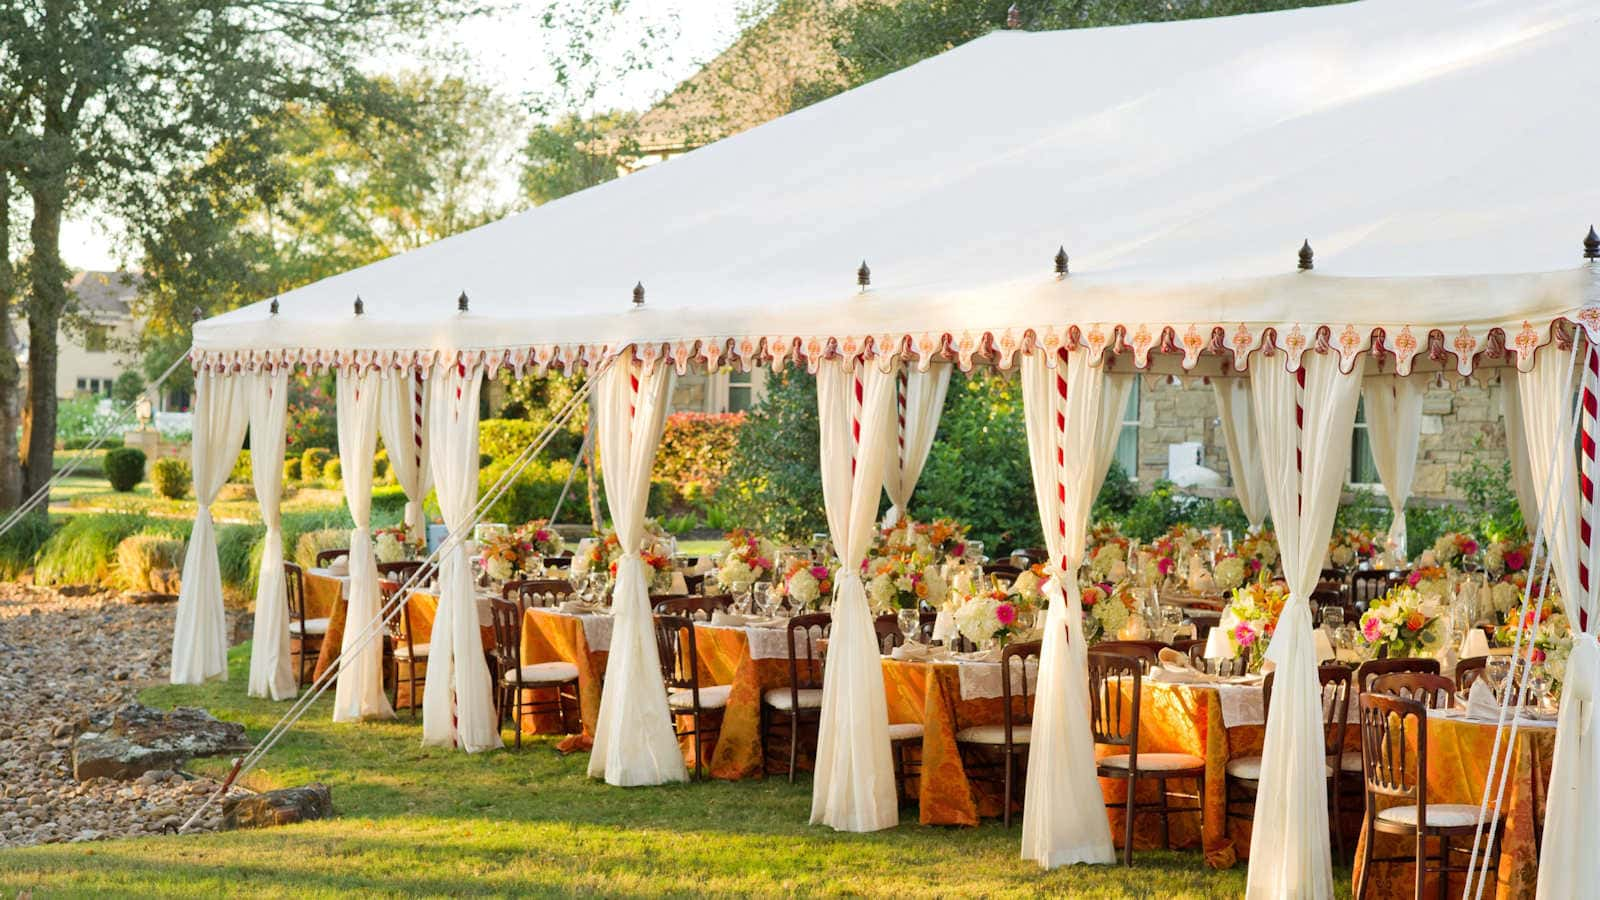 Swan Event Hire of Bassendean